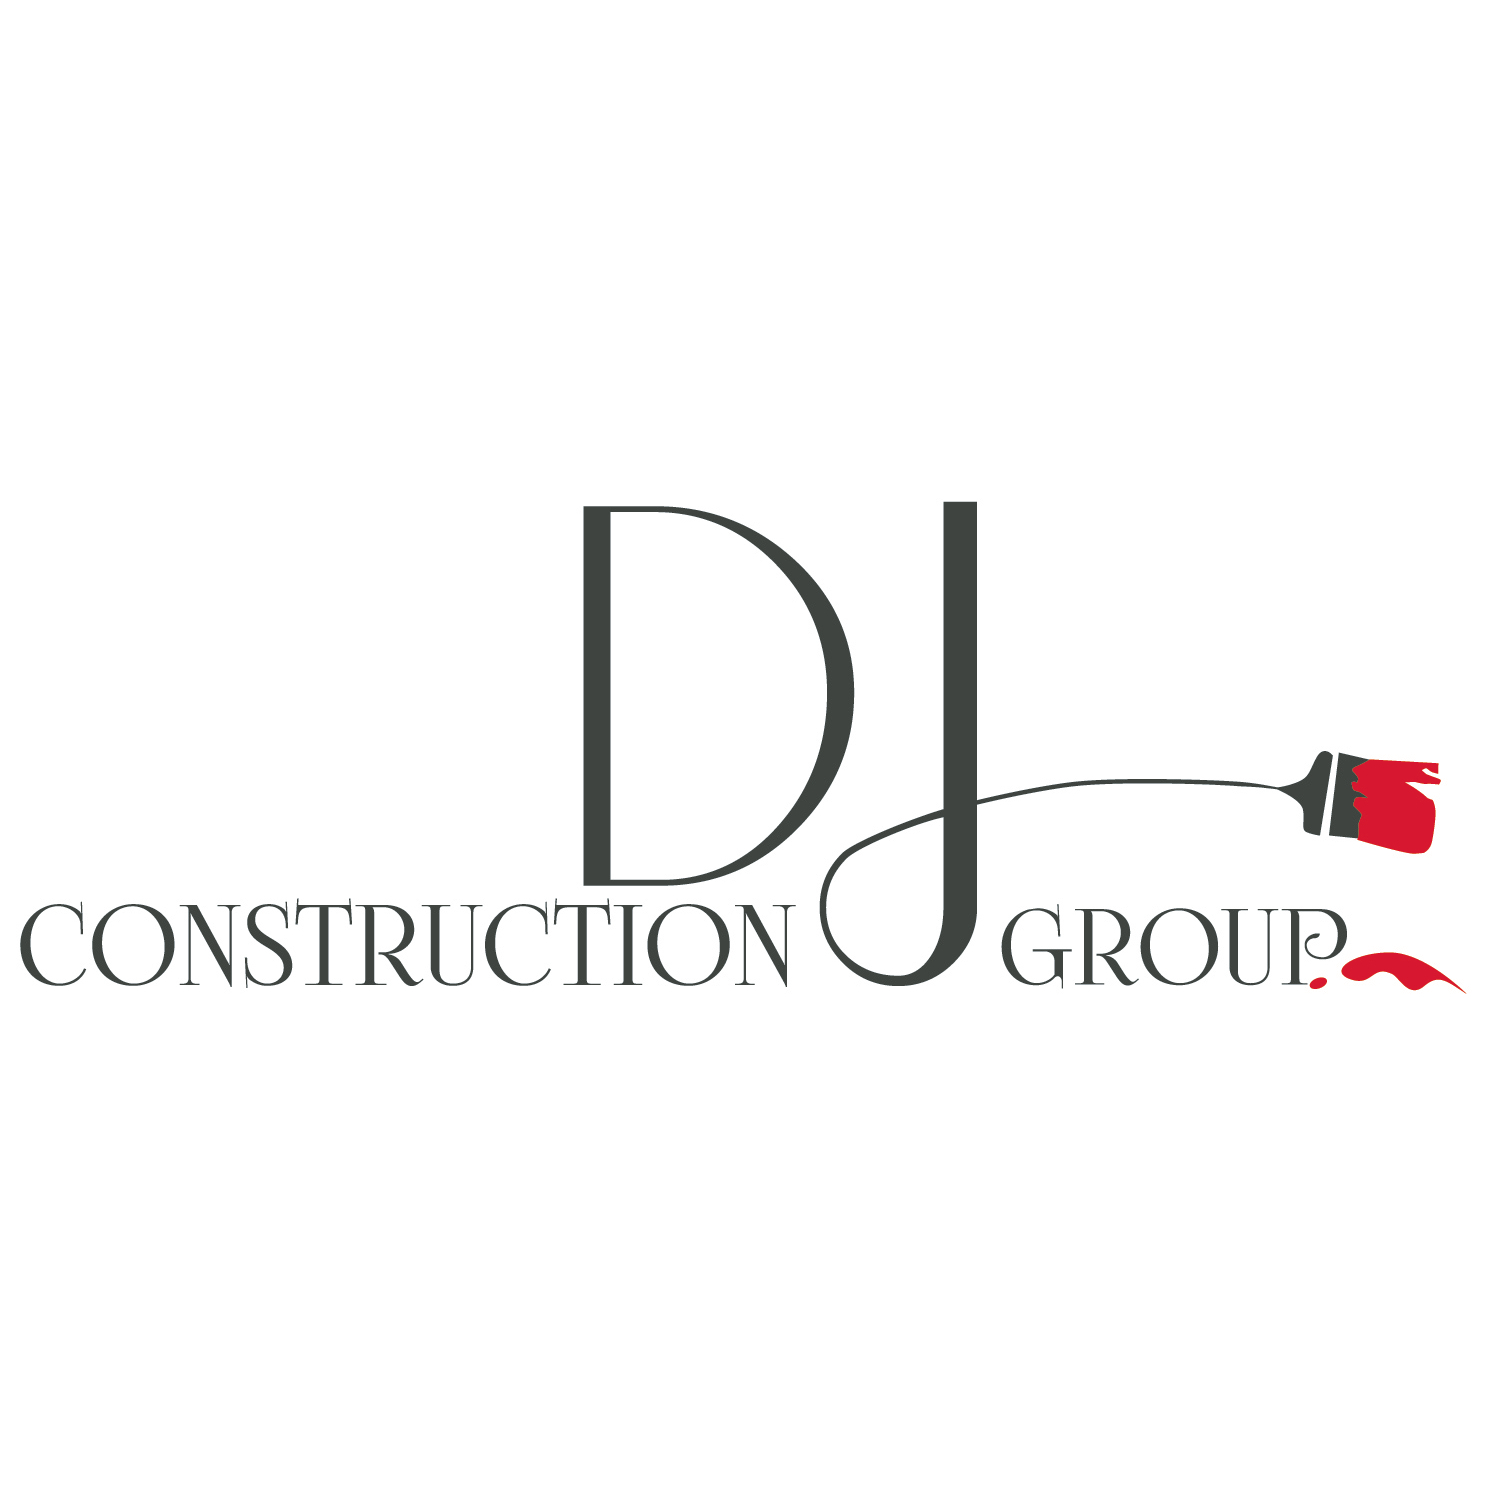 dj construction group inc coupons near me in bronx 8coupons. Black Bedroom Furniture Sets. Home Design Ideas